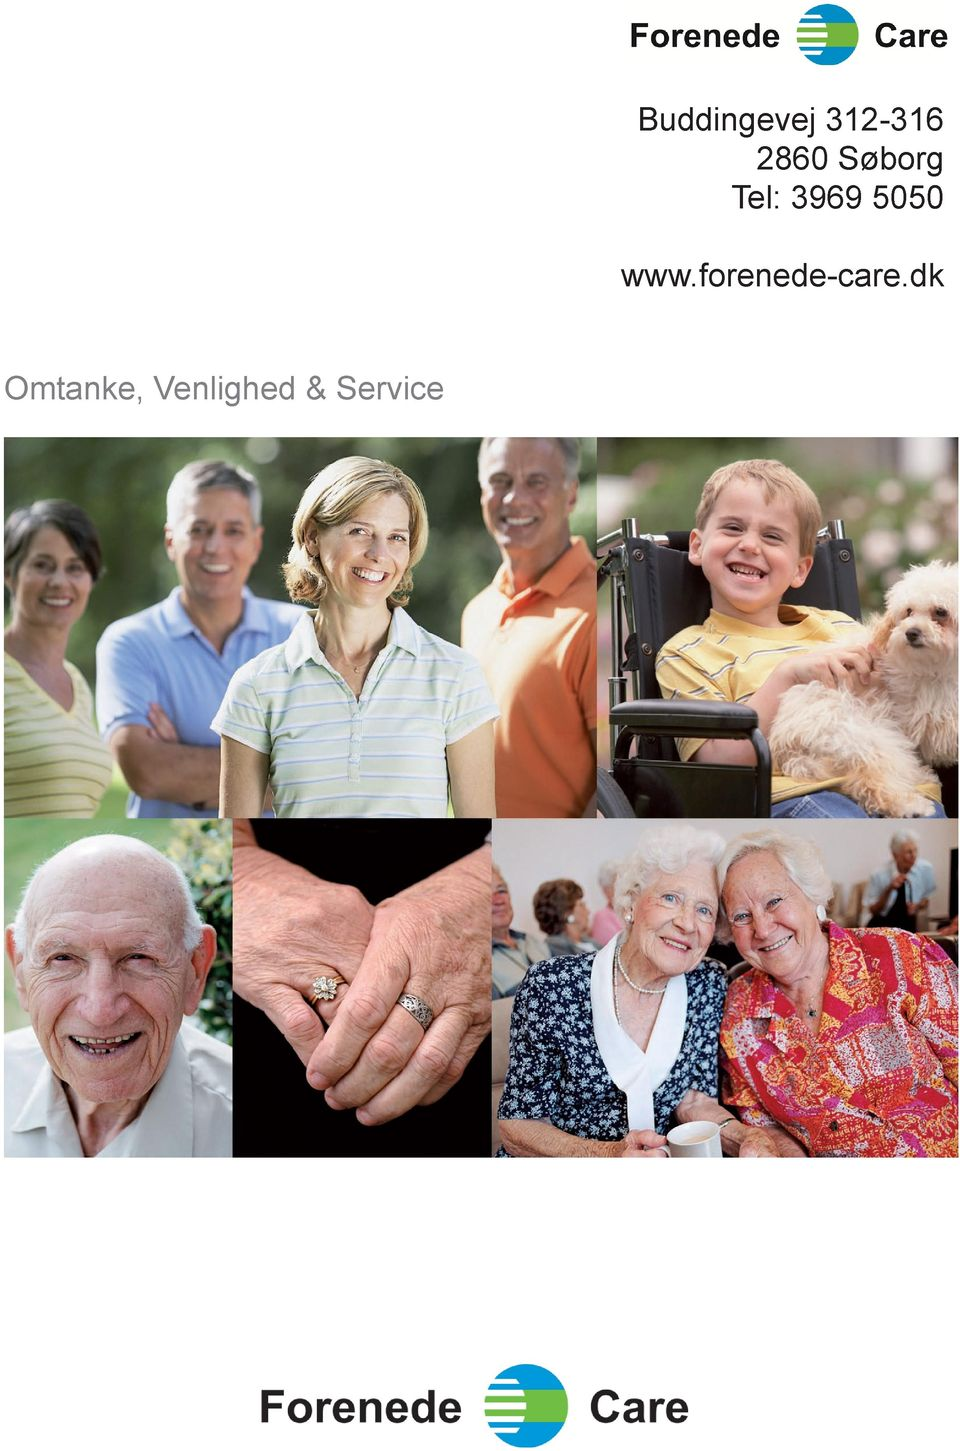 5050 www.forenede-care.